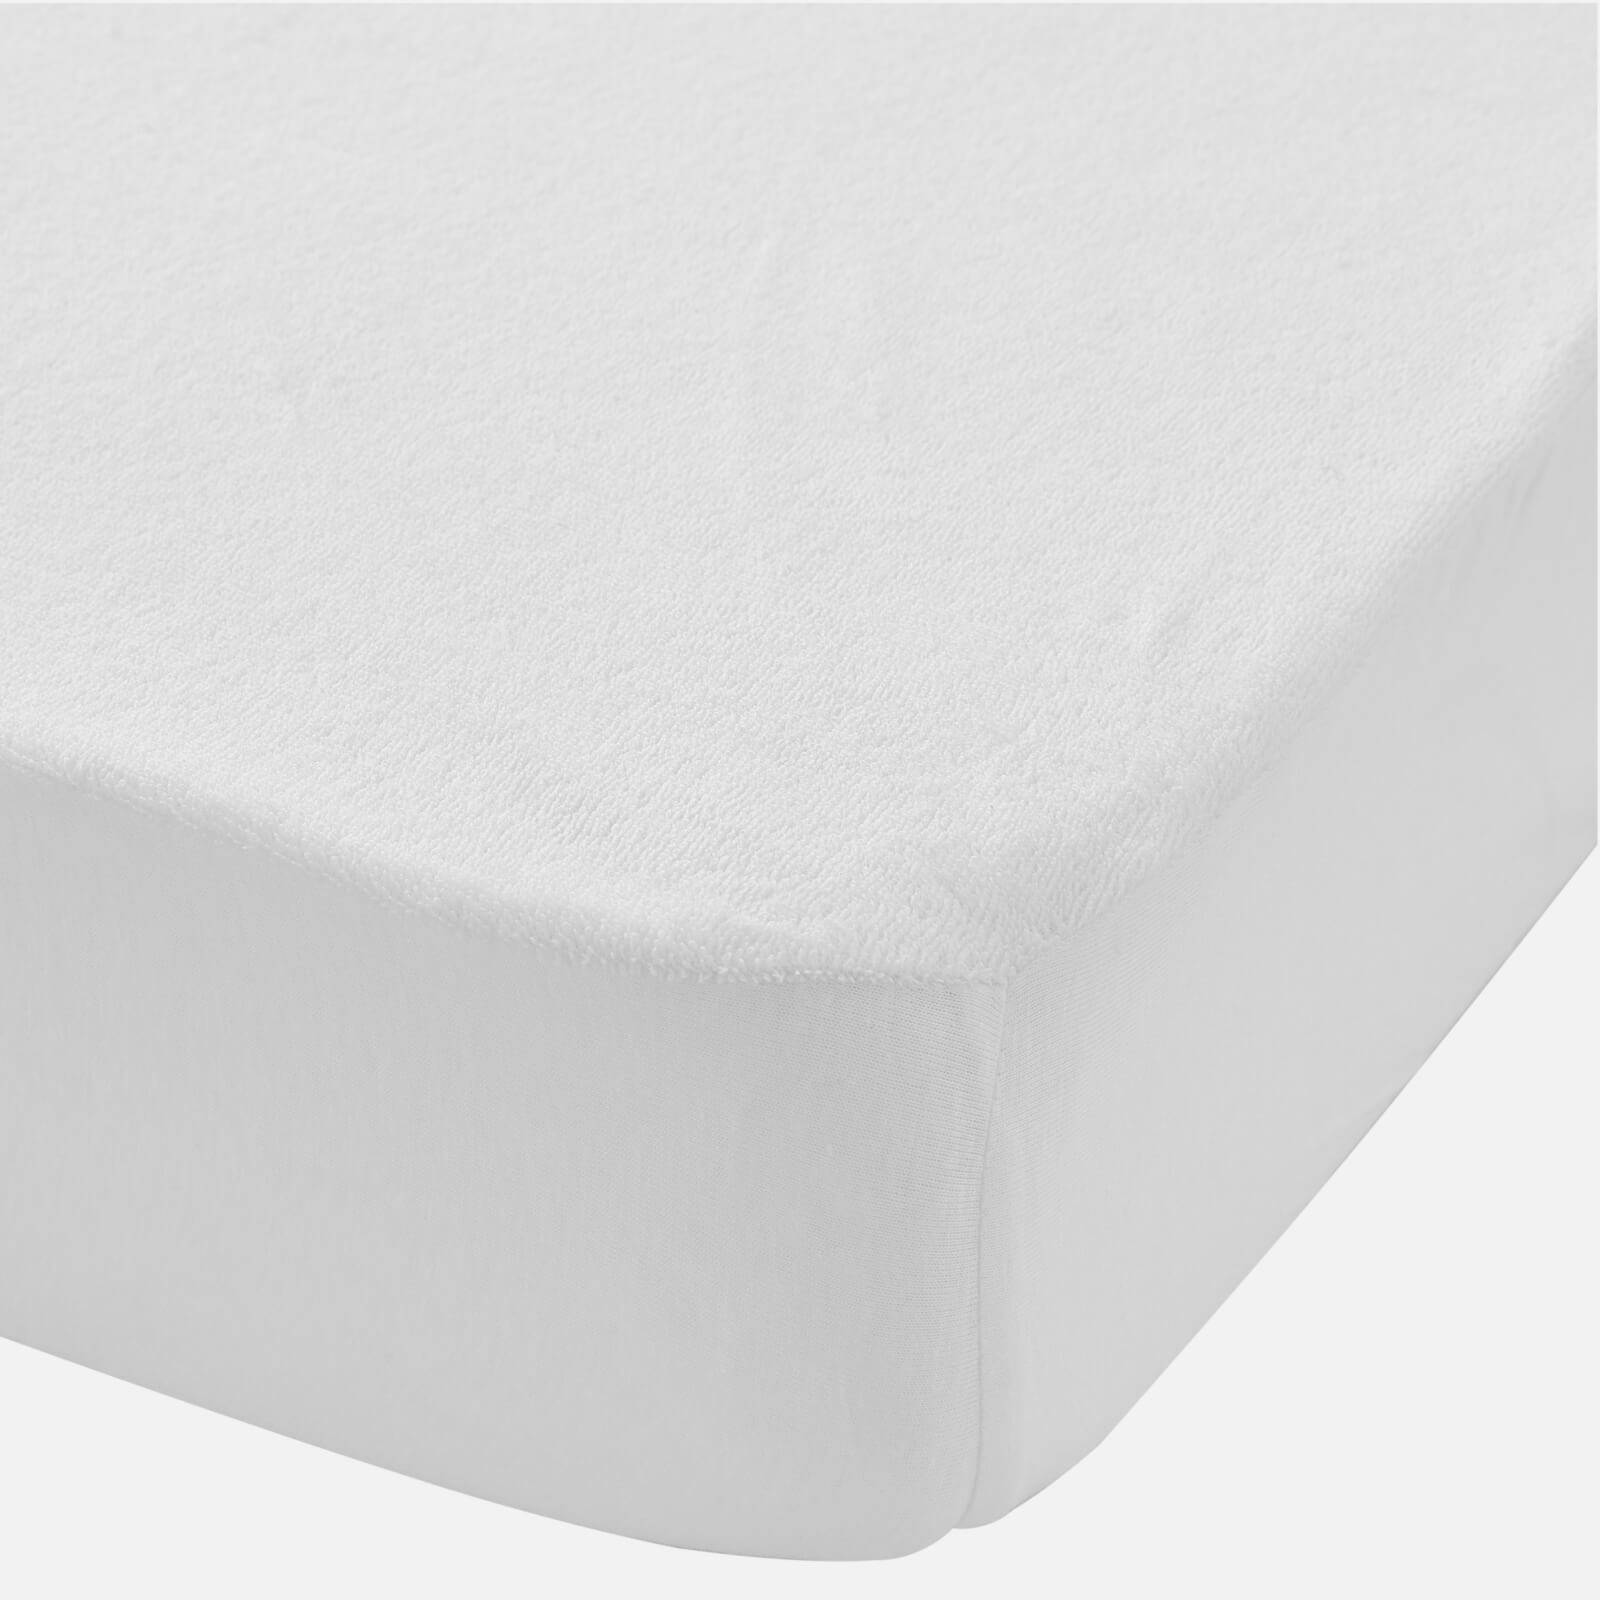 in homeware Waterproof Terry Baby Mattress Protector - White - Cotbed